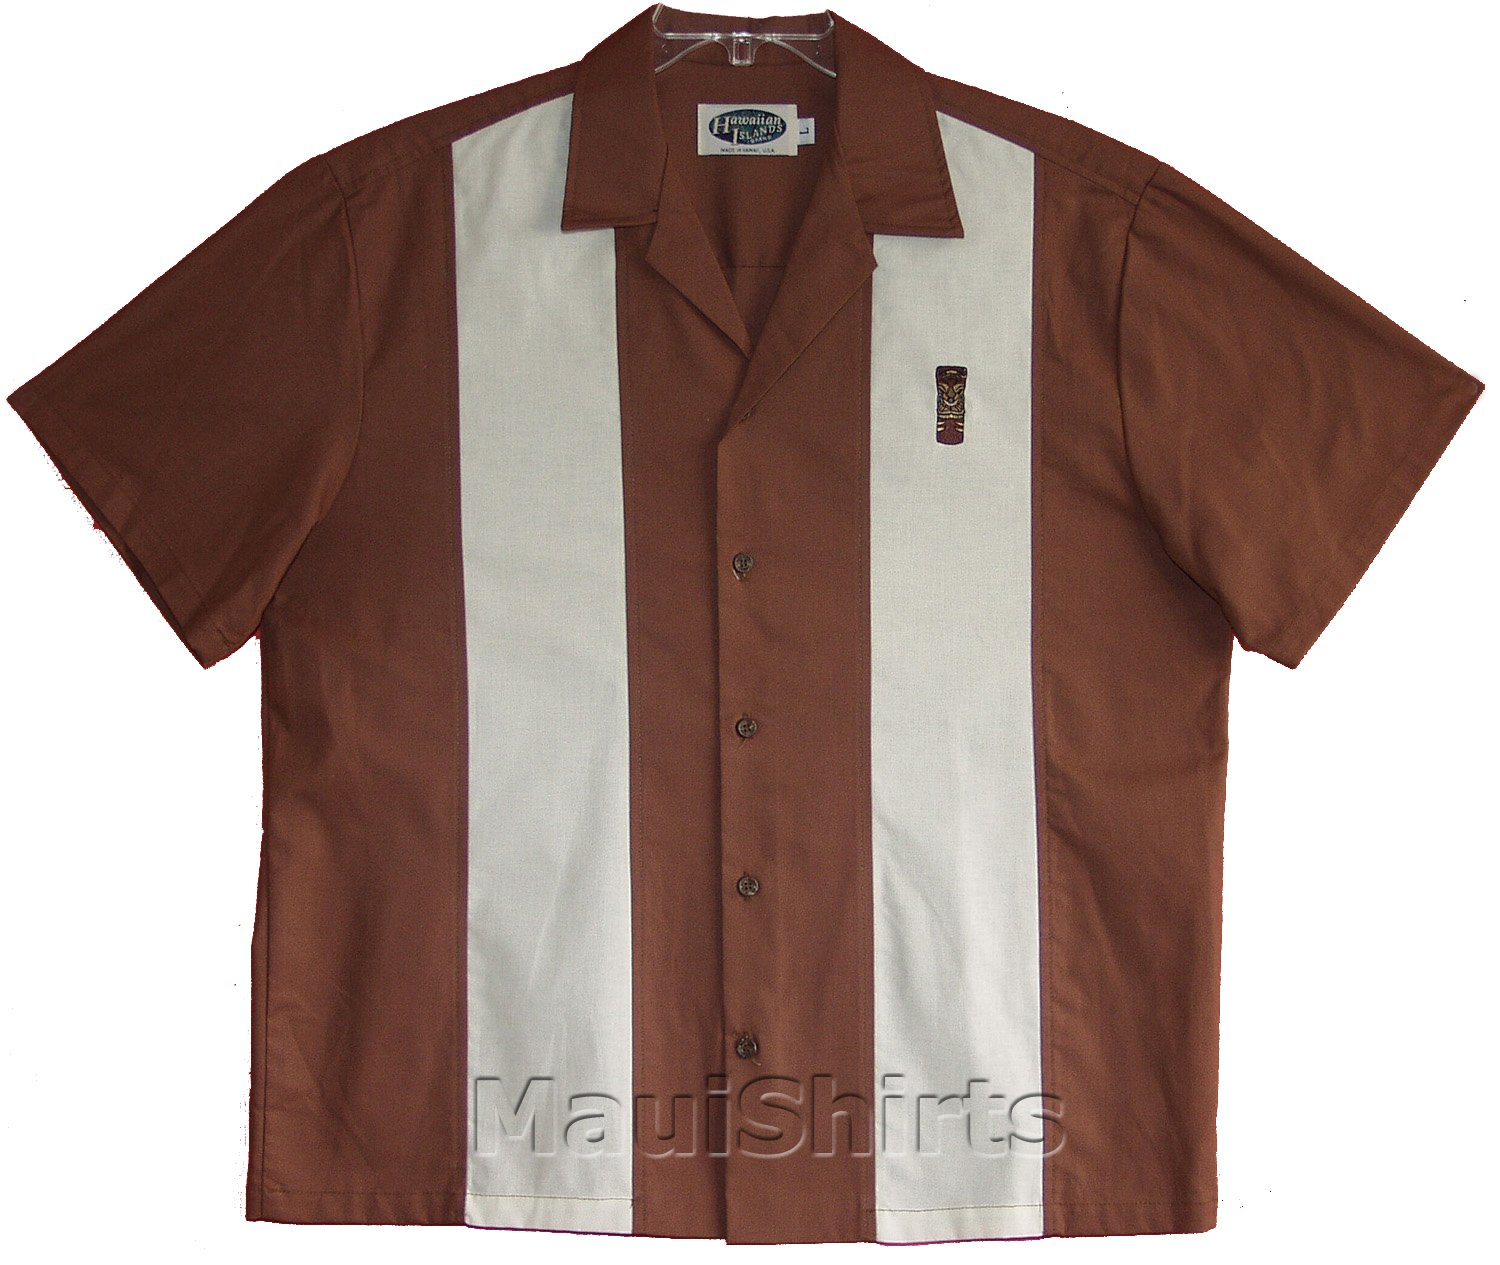 Embroidered Bowling Shirt - Tiki God Men's Hawaiian Aloha Solid Retro Panel Cotton Shirt in Brown - S by RJC Men